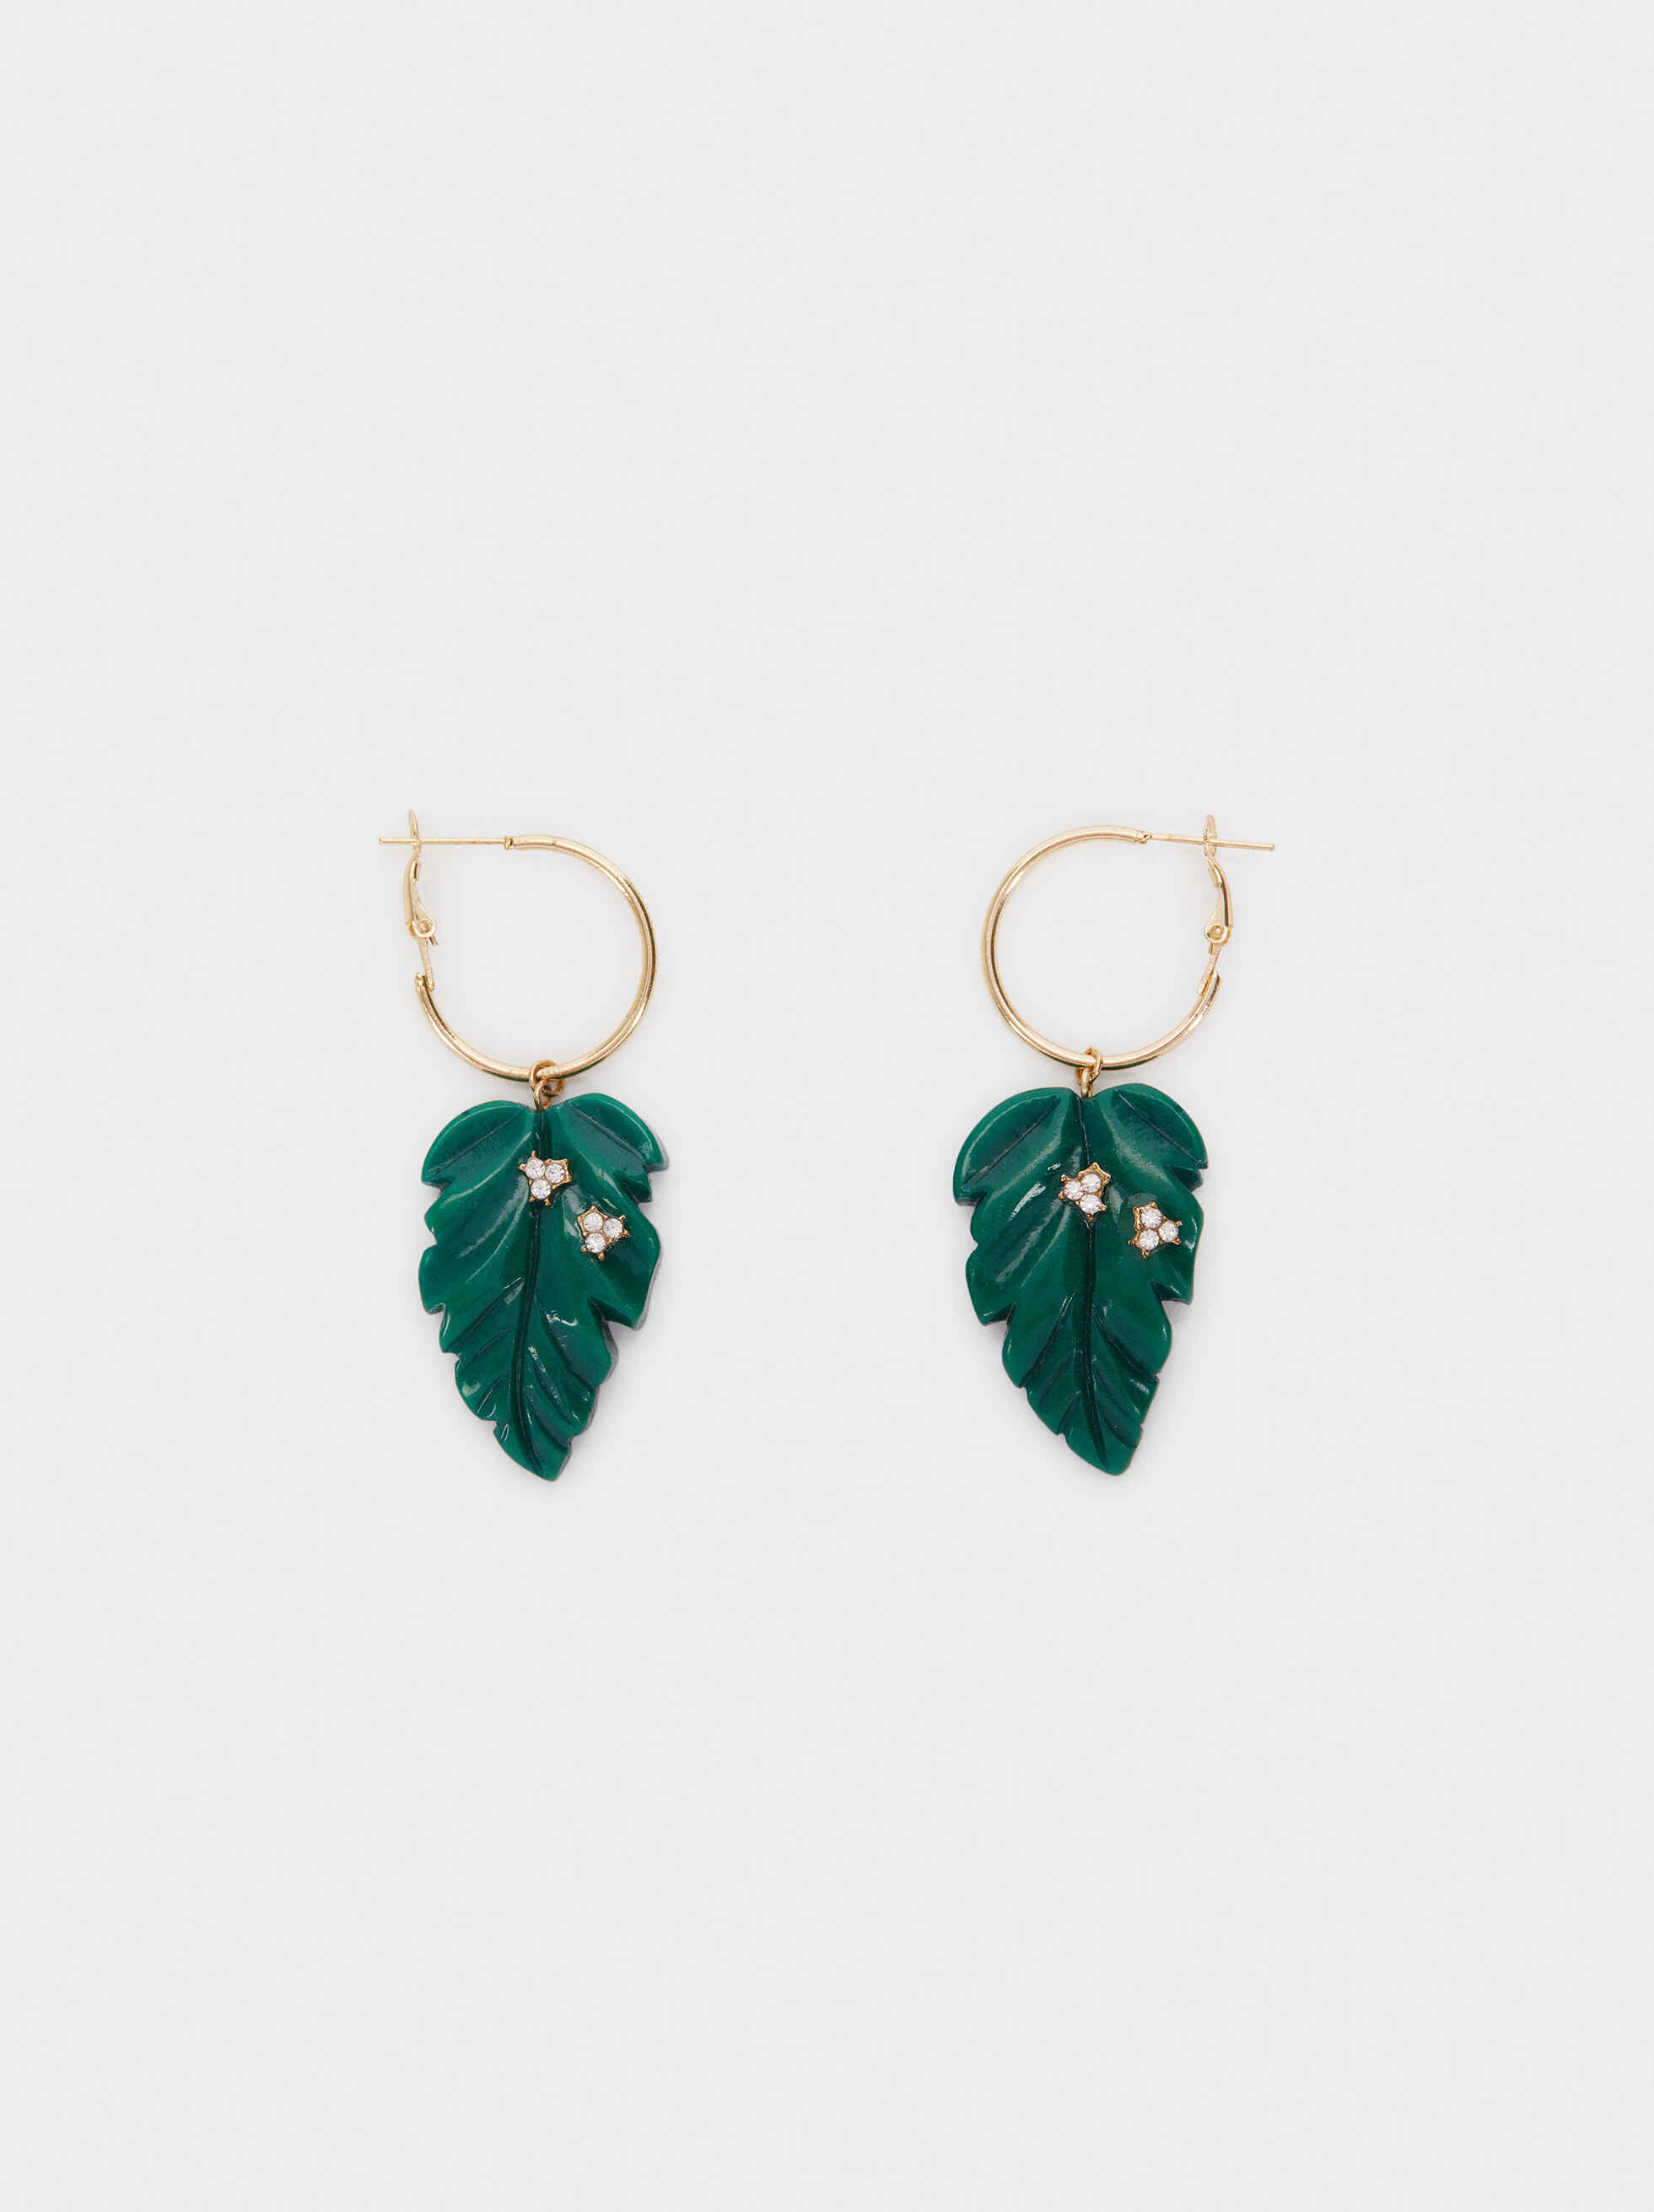 Tropicalia Large Hoop Earrings With Leaves, , hi-res